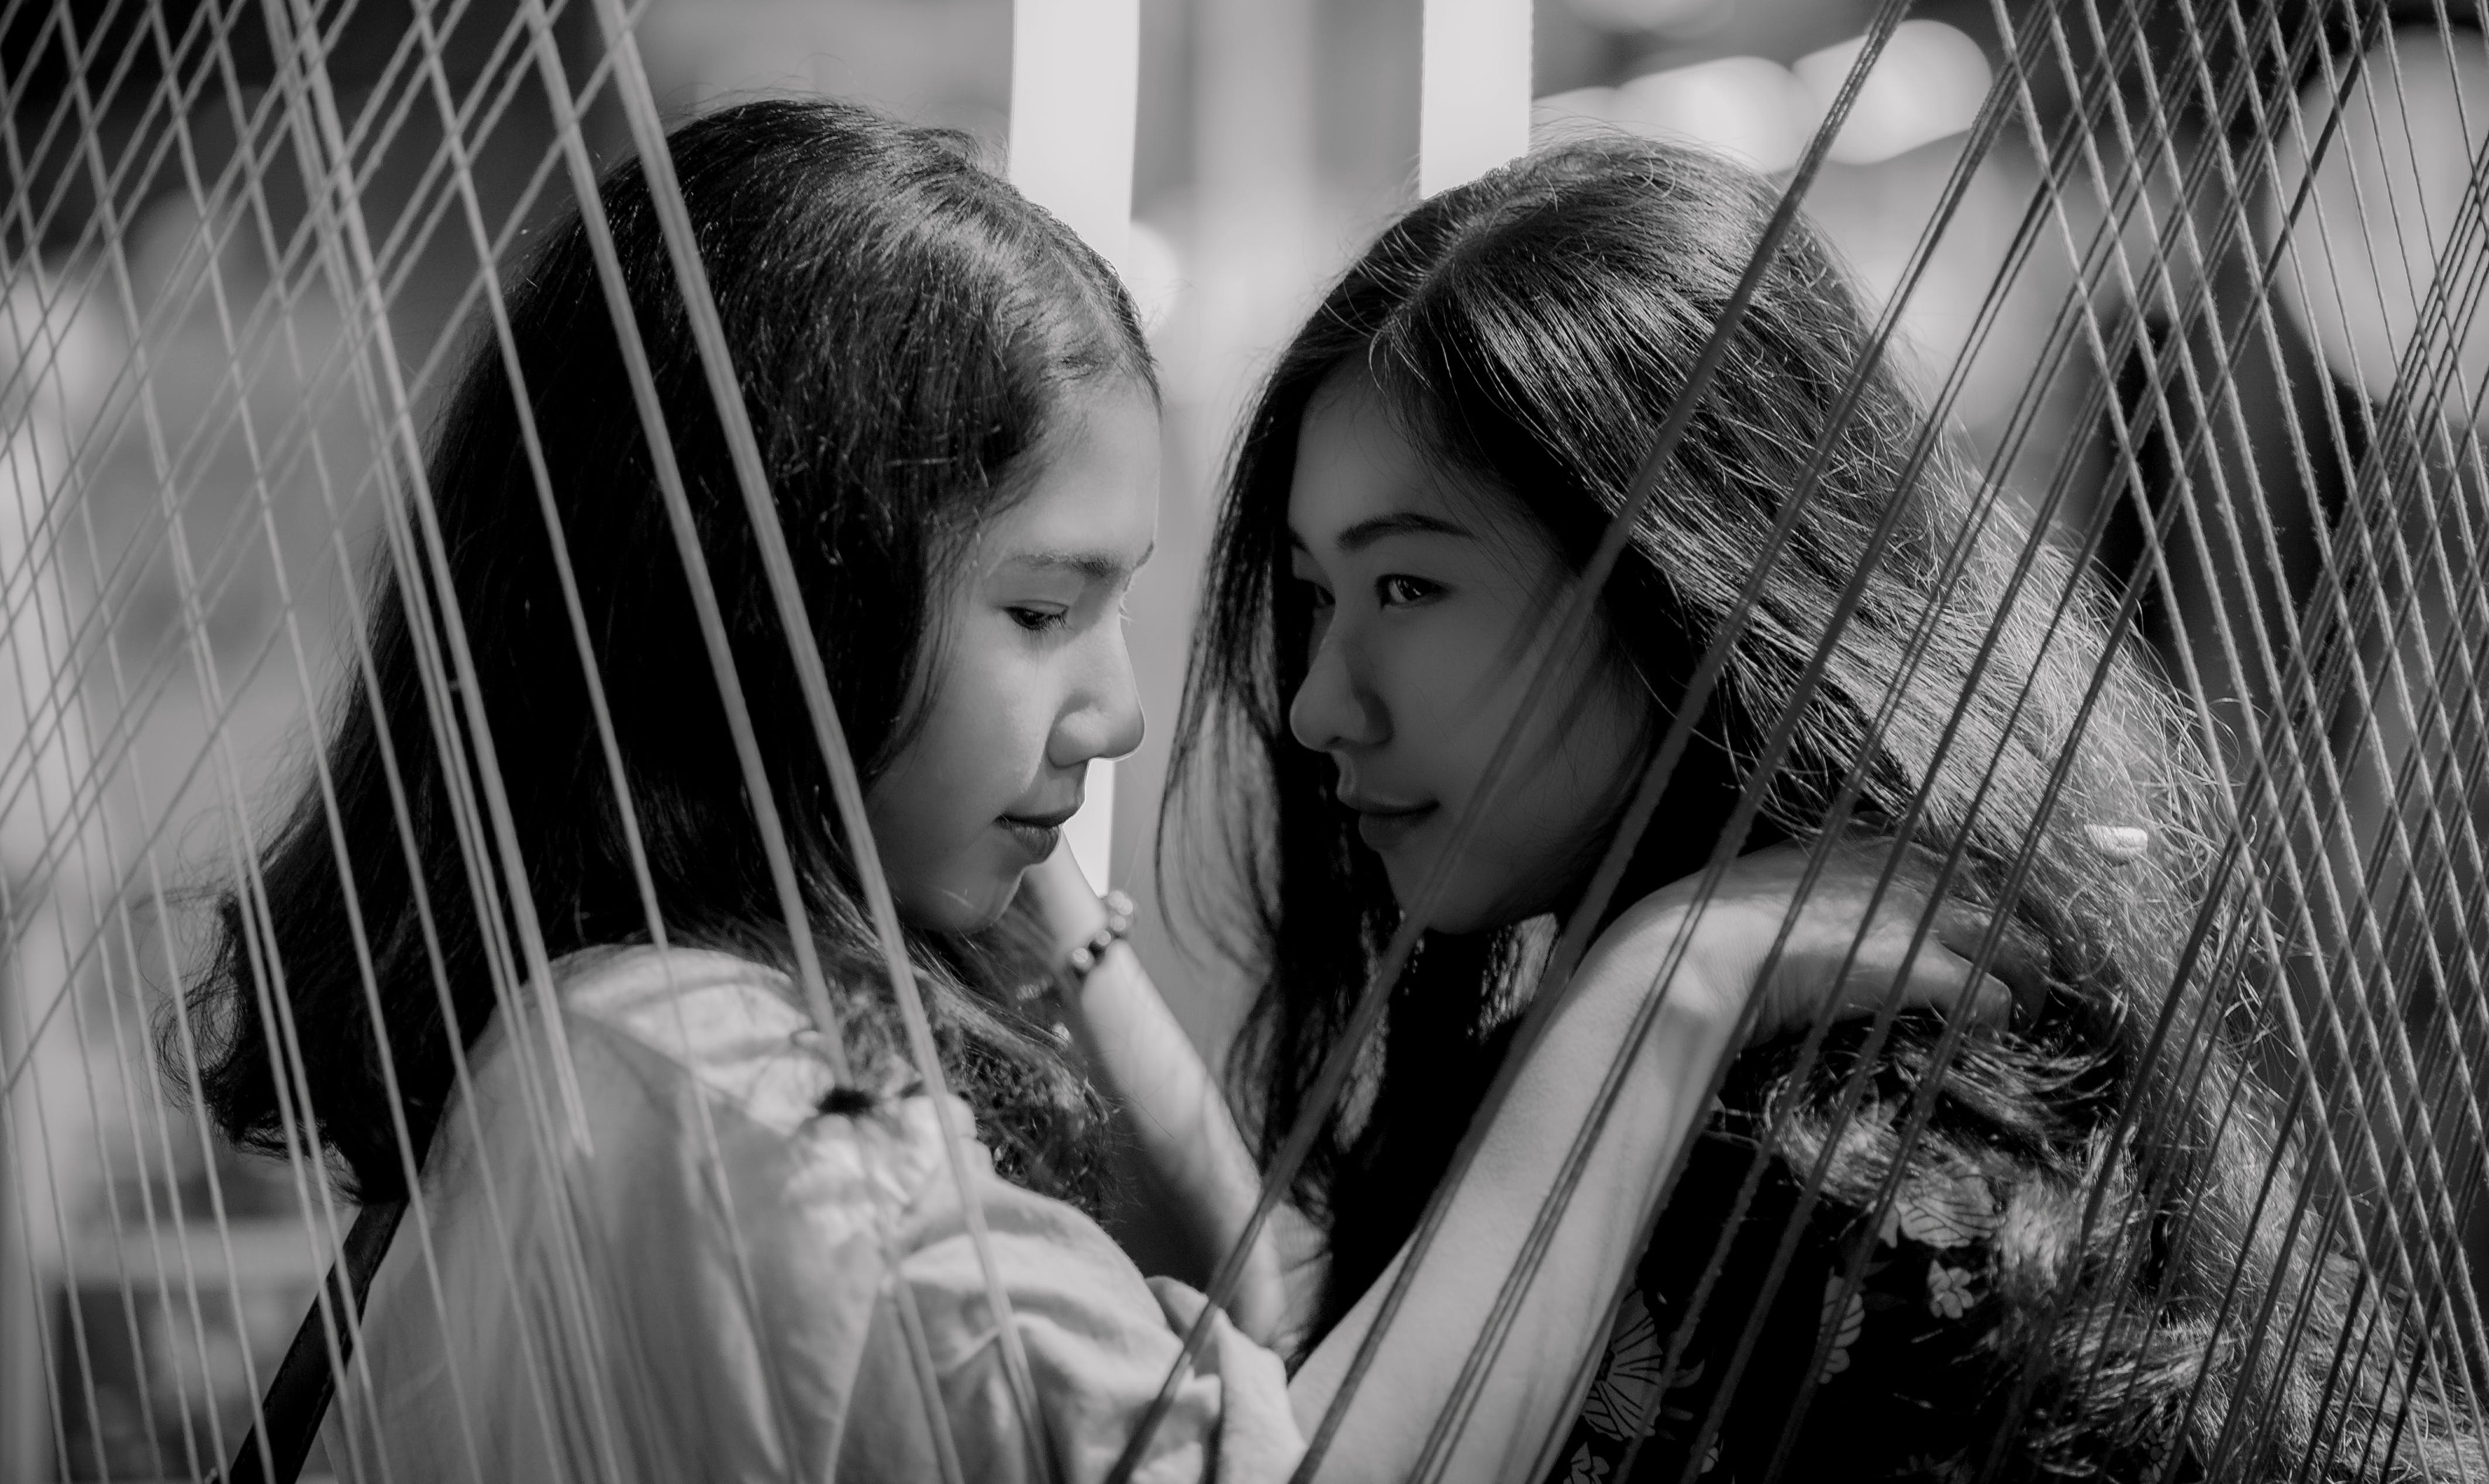 Grayscale Photography of Two Girls